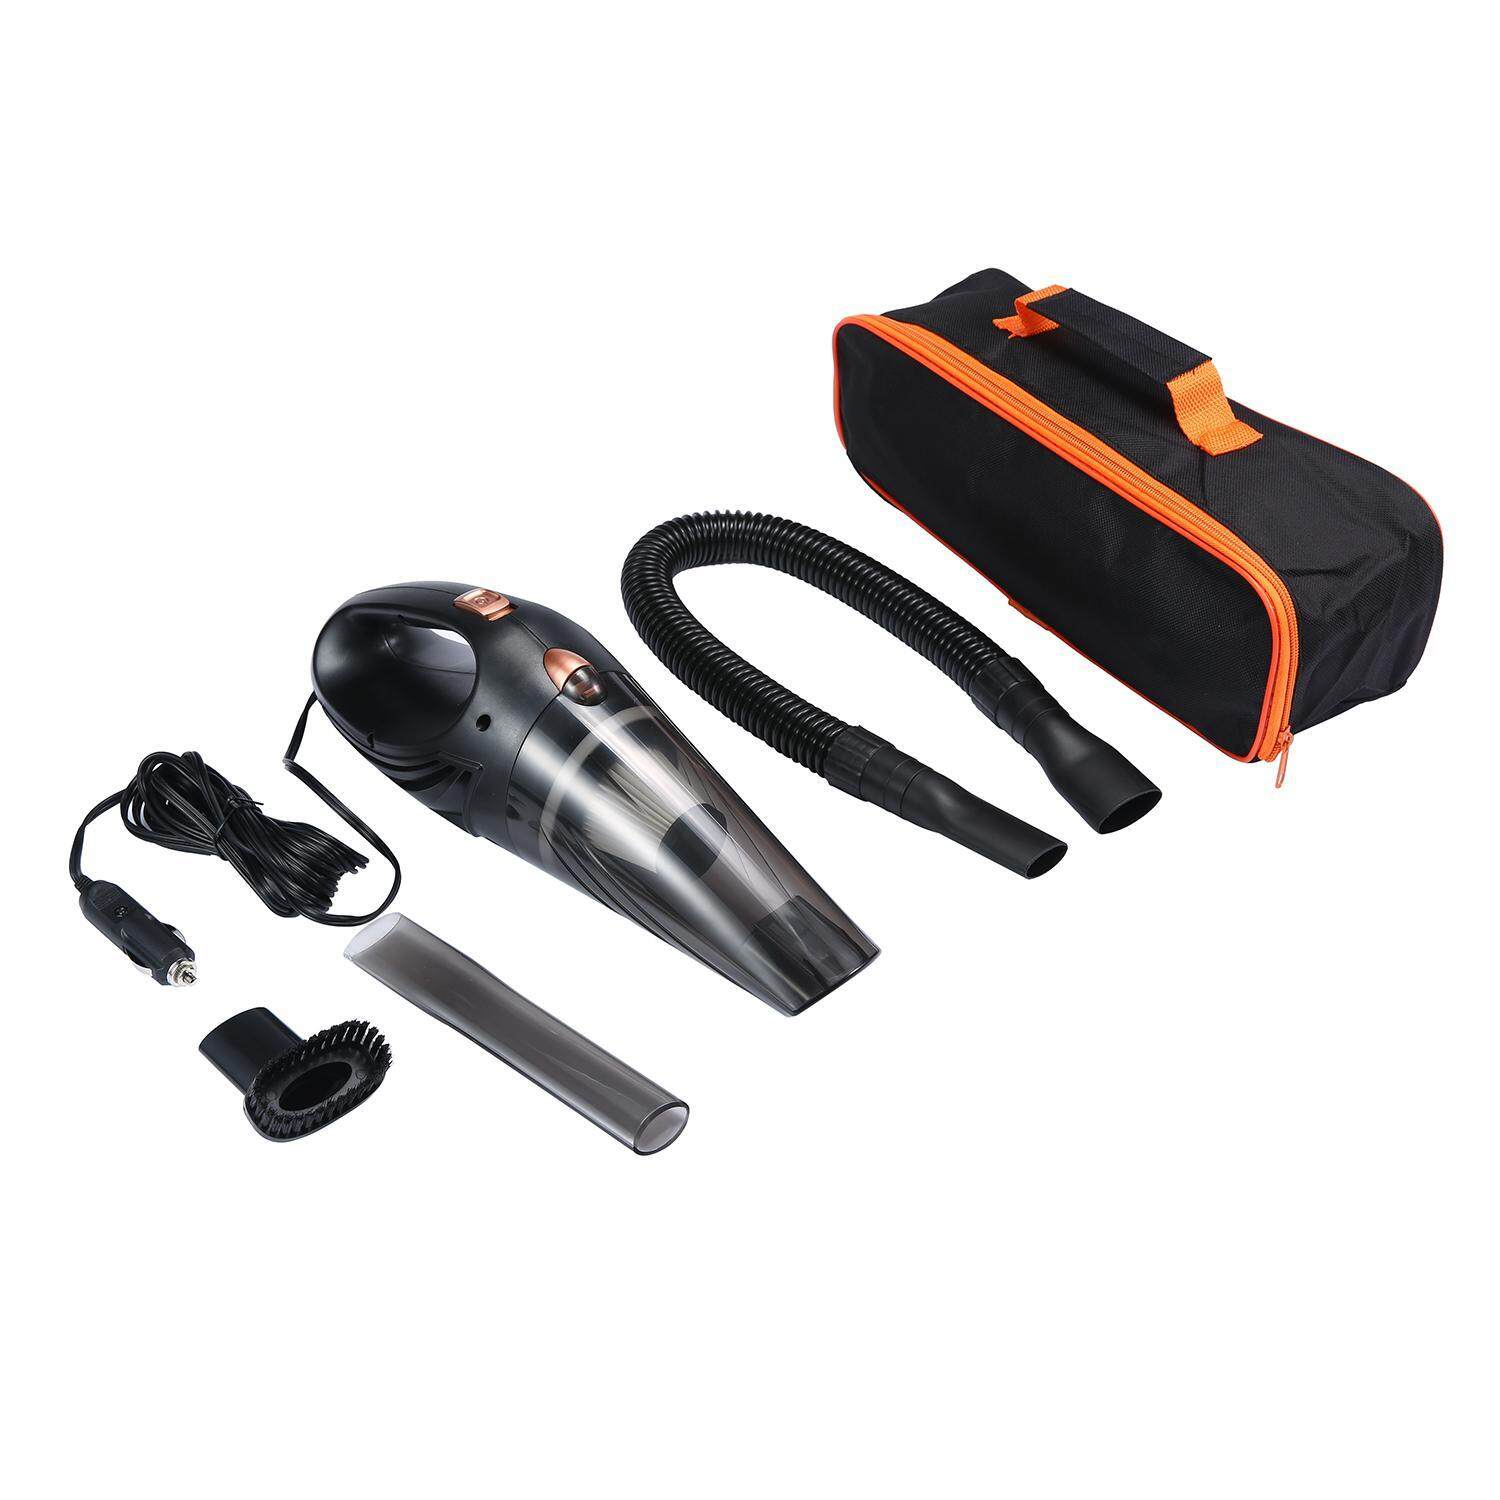 ruixiang Car Vacuum Cleaner, Handheld Wet/Dry Auto Vacuum Cleaner DC 12V106W With Storage